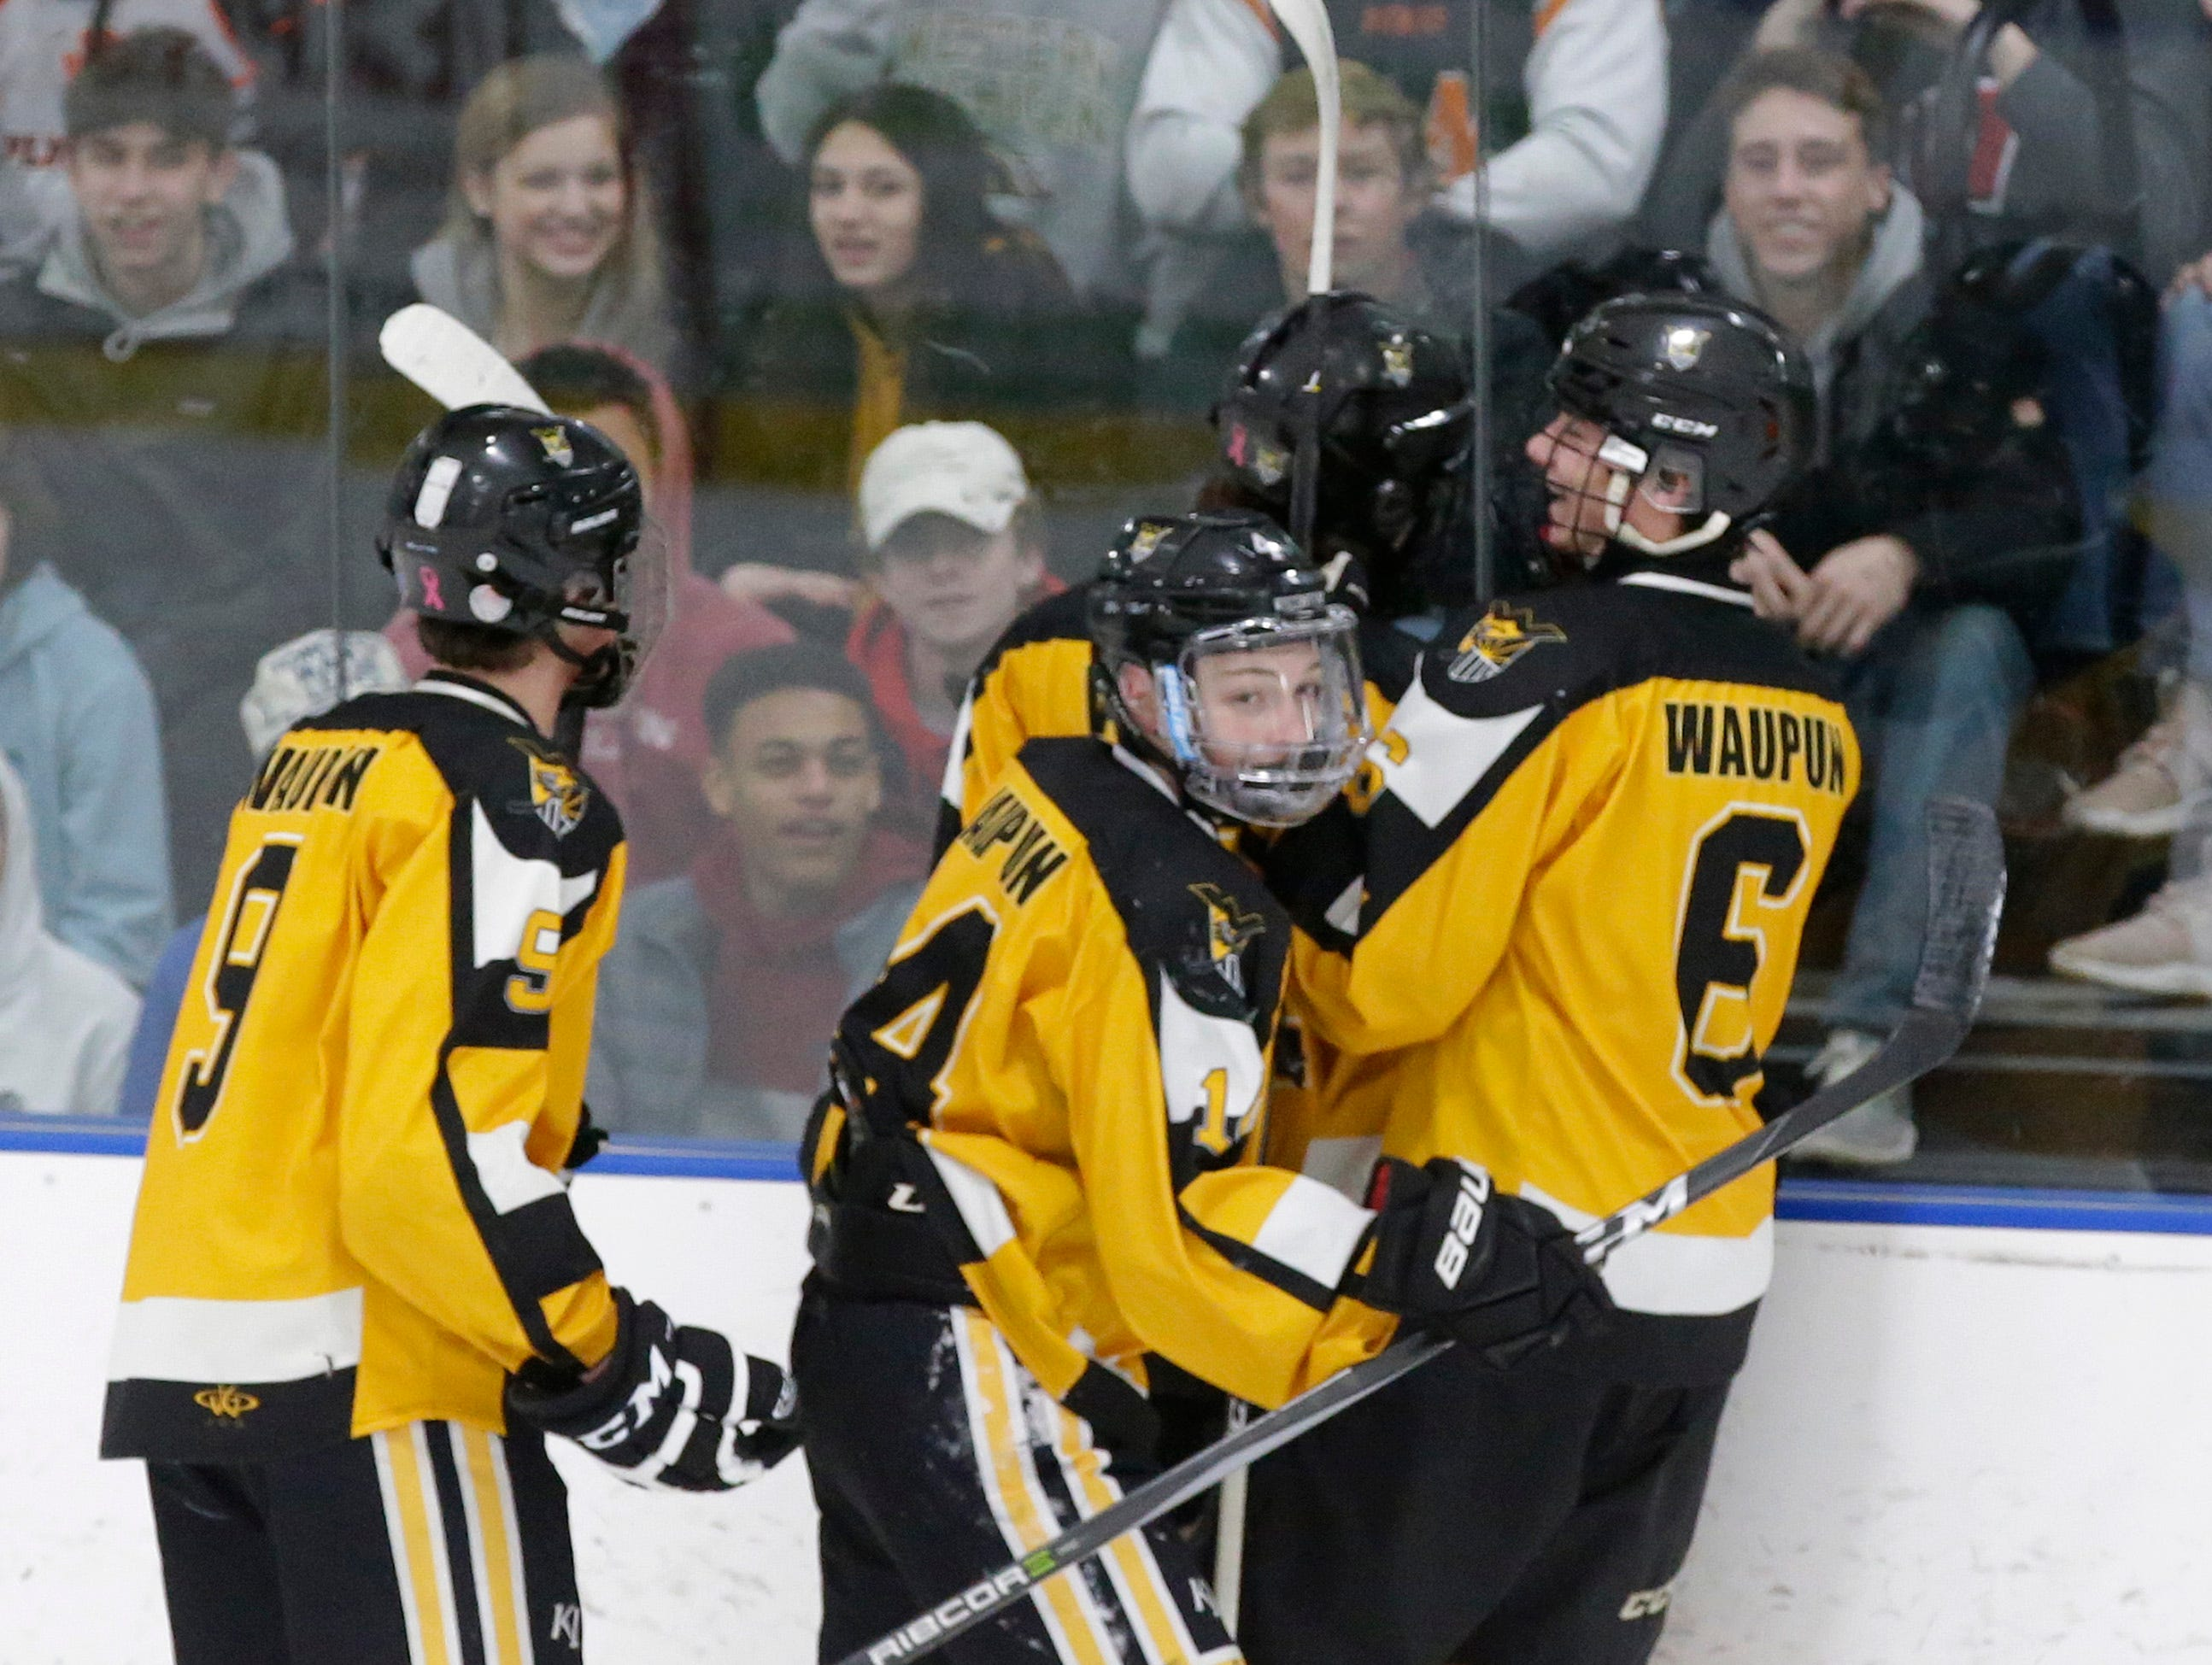 Waupun celebrates a goal against Sheboygan Red Raiders, Wednesday, February 13, 2019, in Sheboygan, Wis.